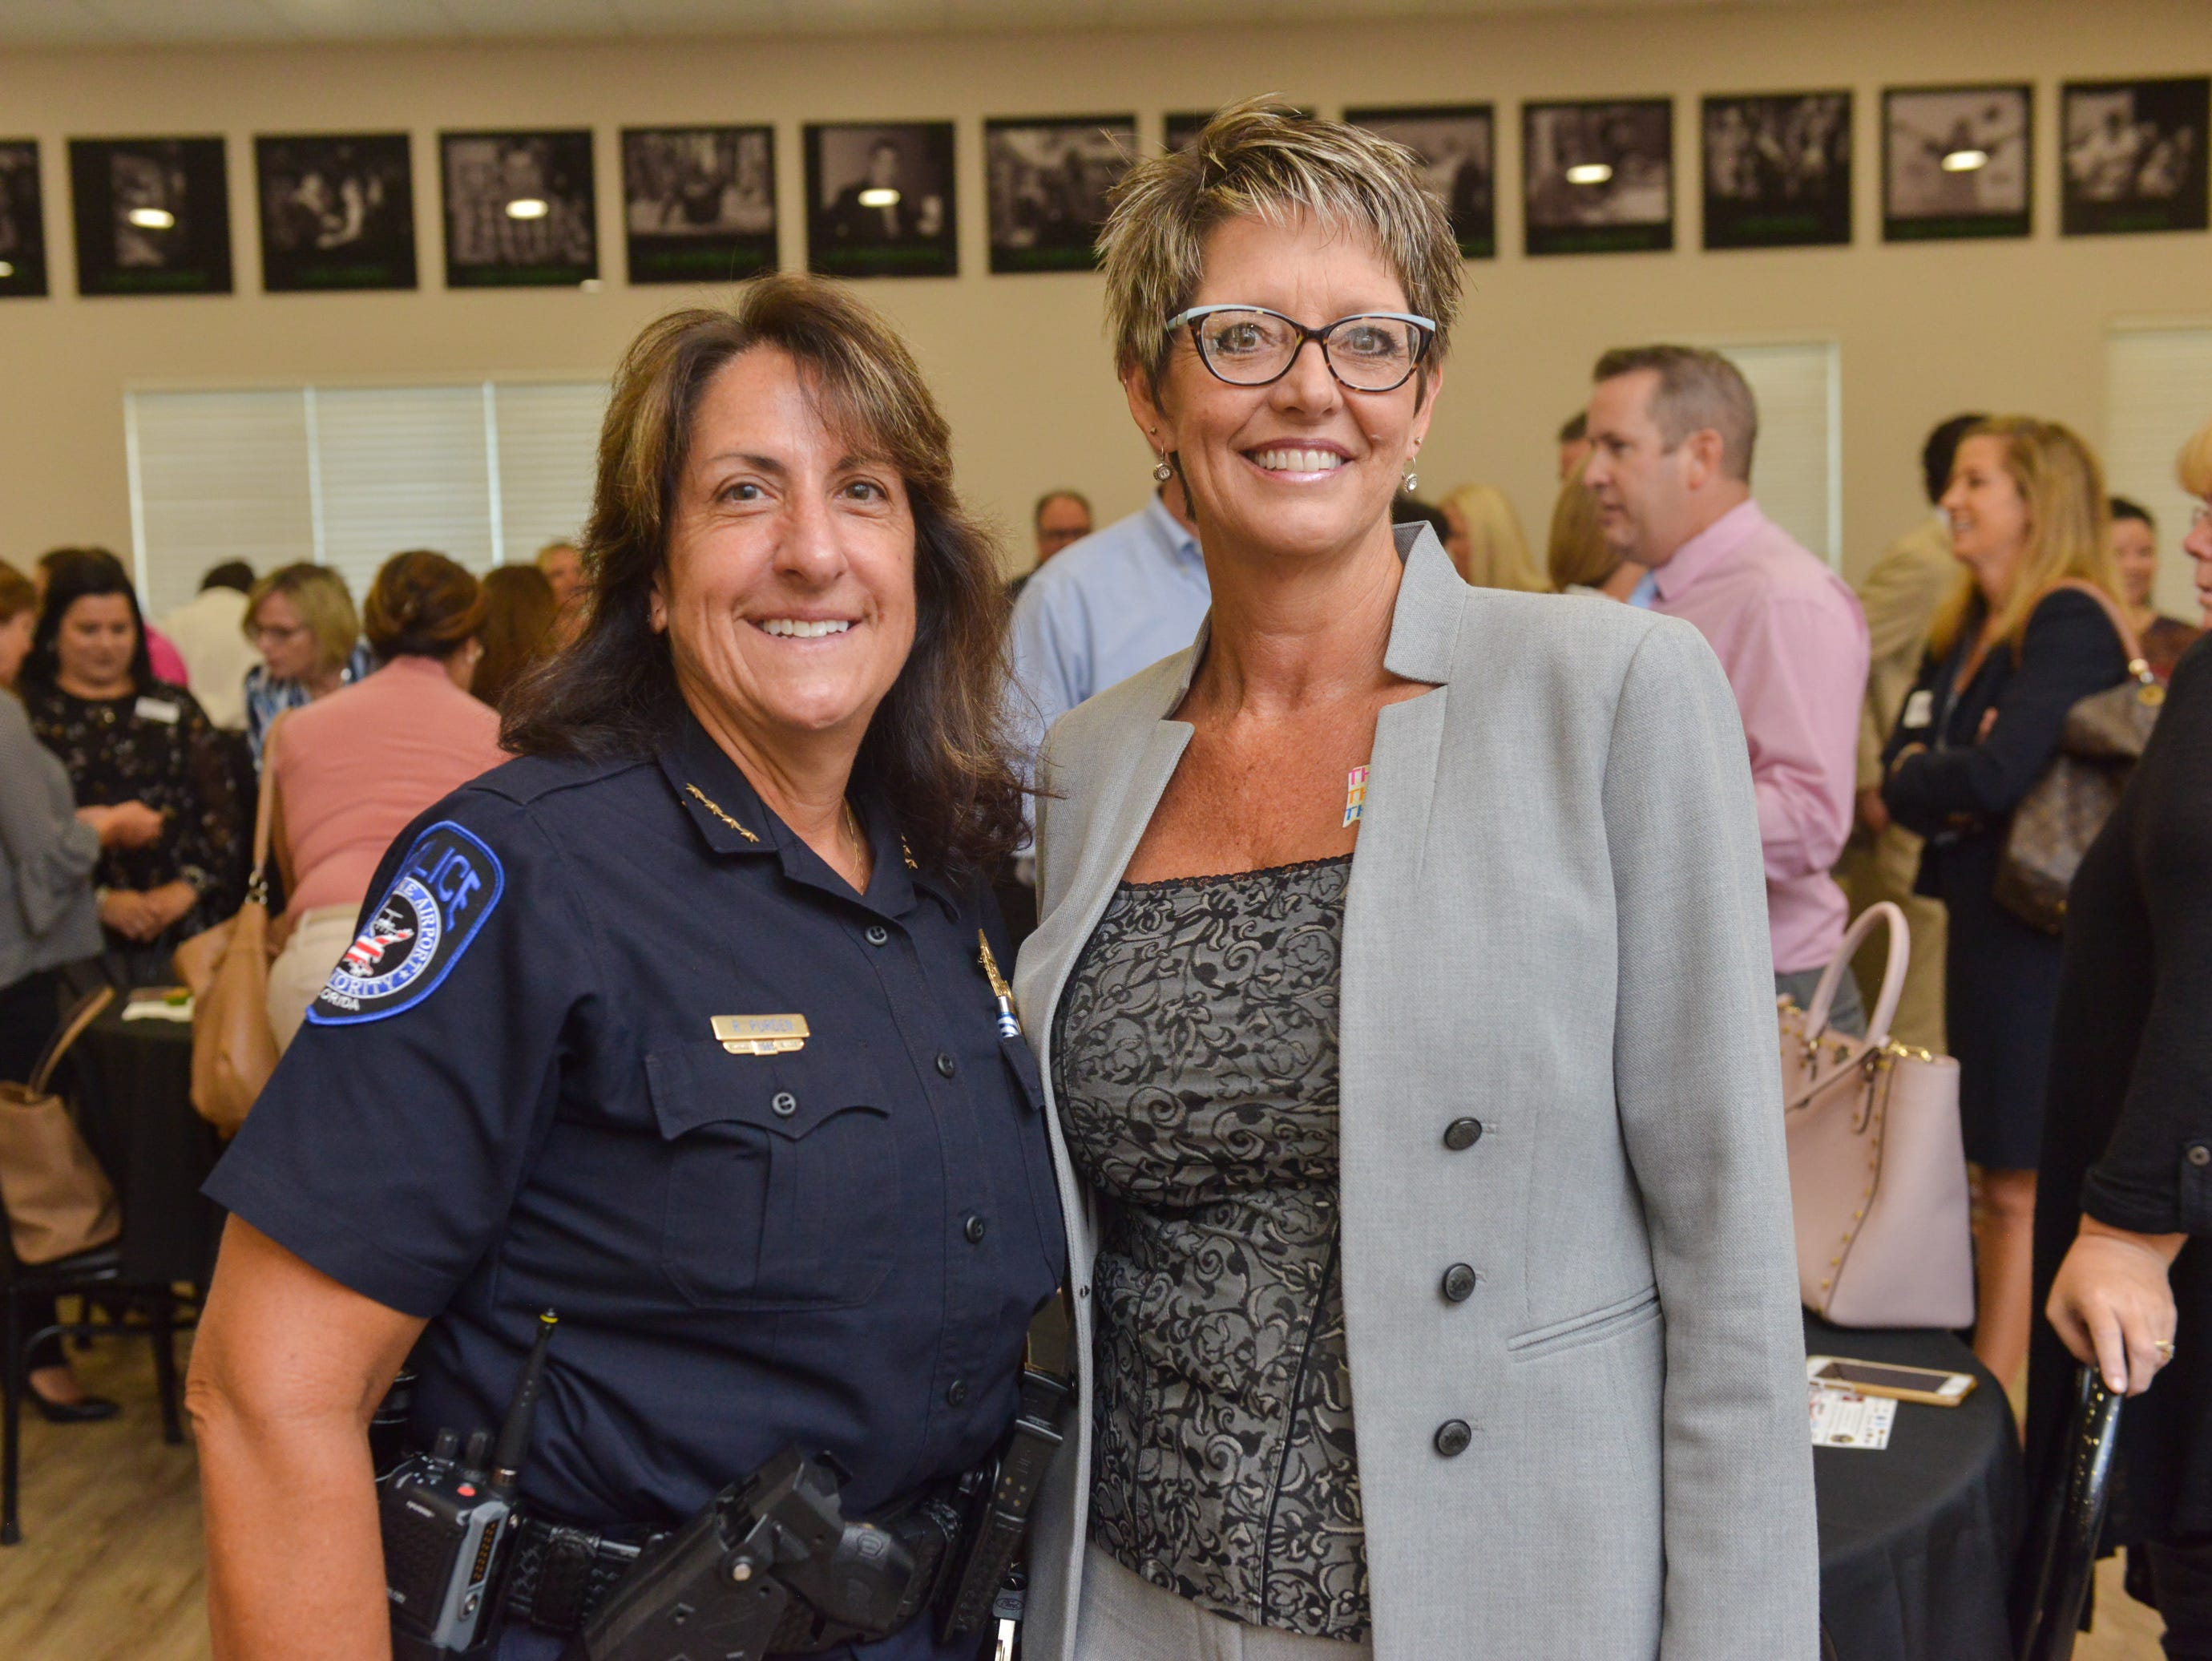 Renee Purden and Michelle Brown during the Women of Excellence Gathering at Promise in Brevard sponsored by the Melbourne Regional Chamber.